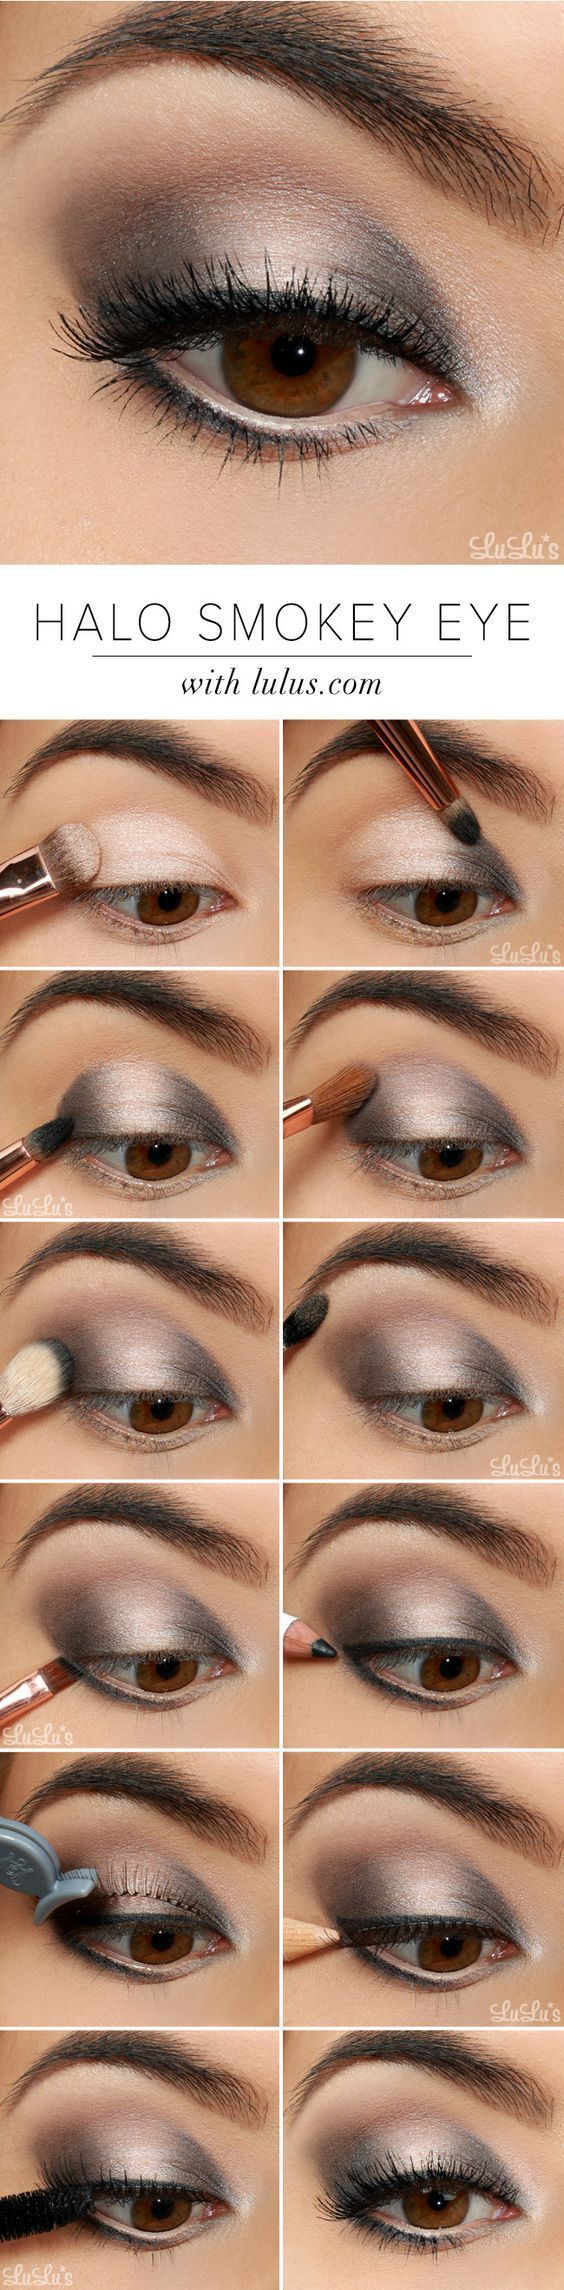 11 Easy Step By Step Makeup Tutorials For Beginners – Eye Makeup Ideas – #Beginners #Easy #Eye #forbeginners #ideas #Makeup #Step #Tutorials